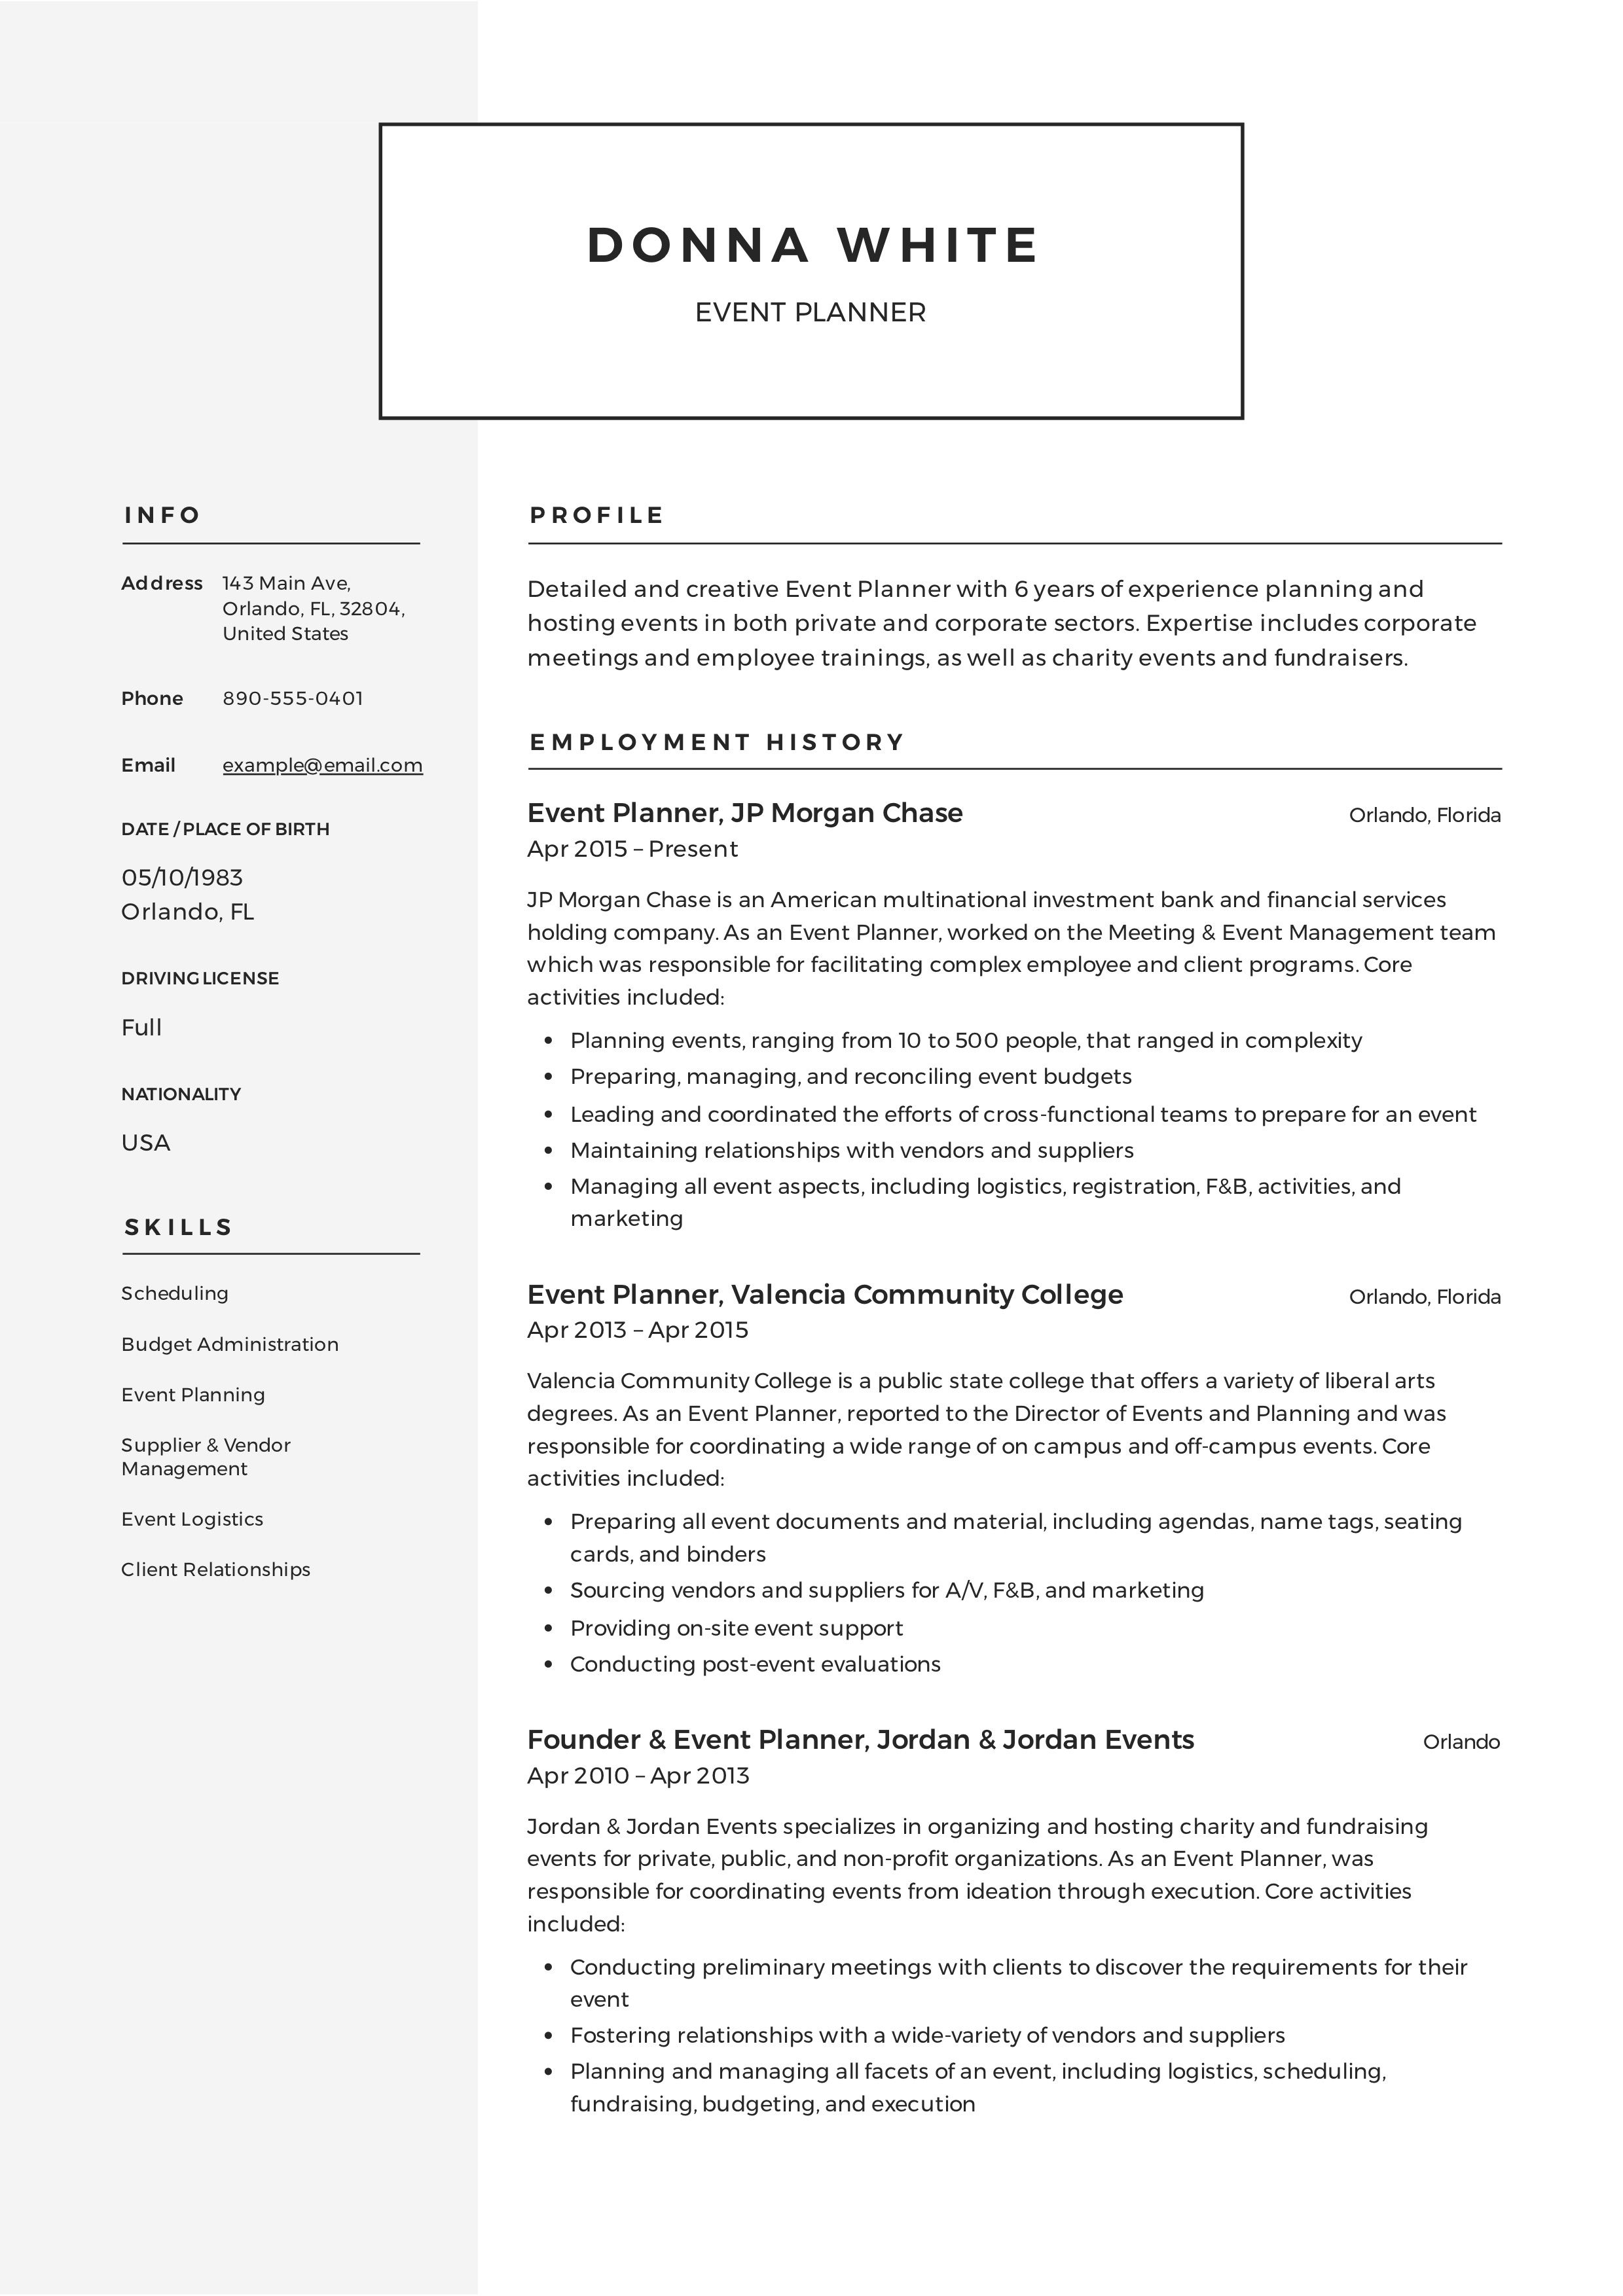 Event Planner Resume Administrative Assistant Resume Event Planner Resume Office Manager Resume